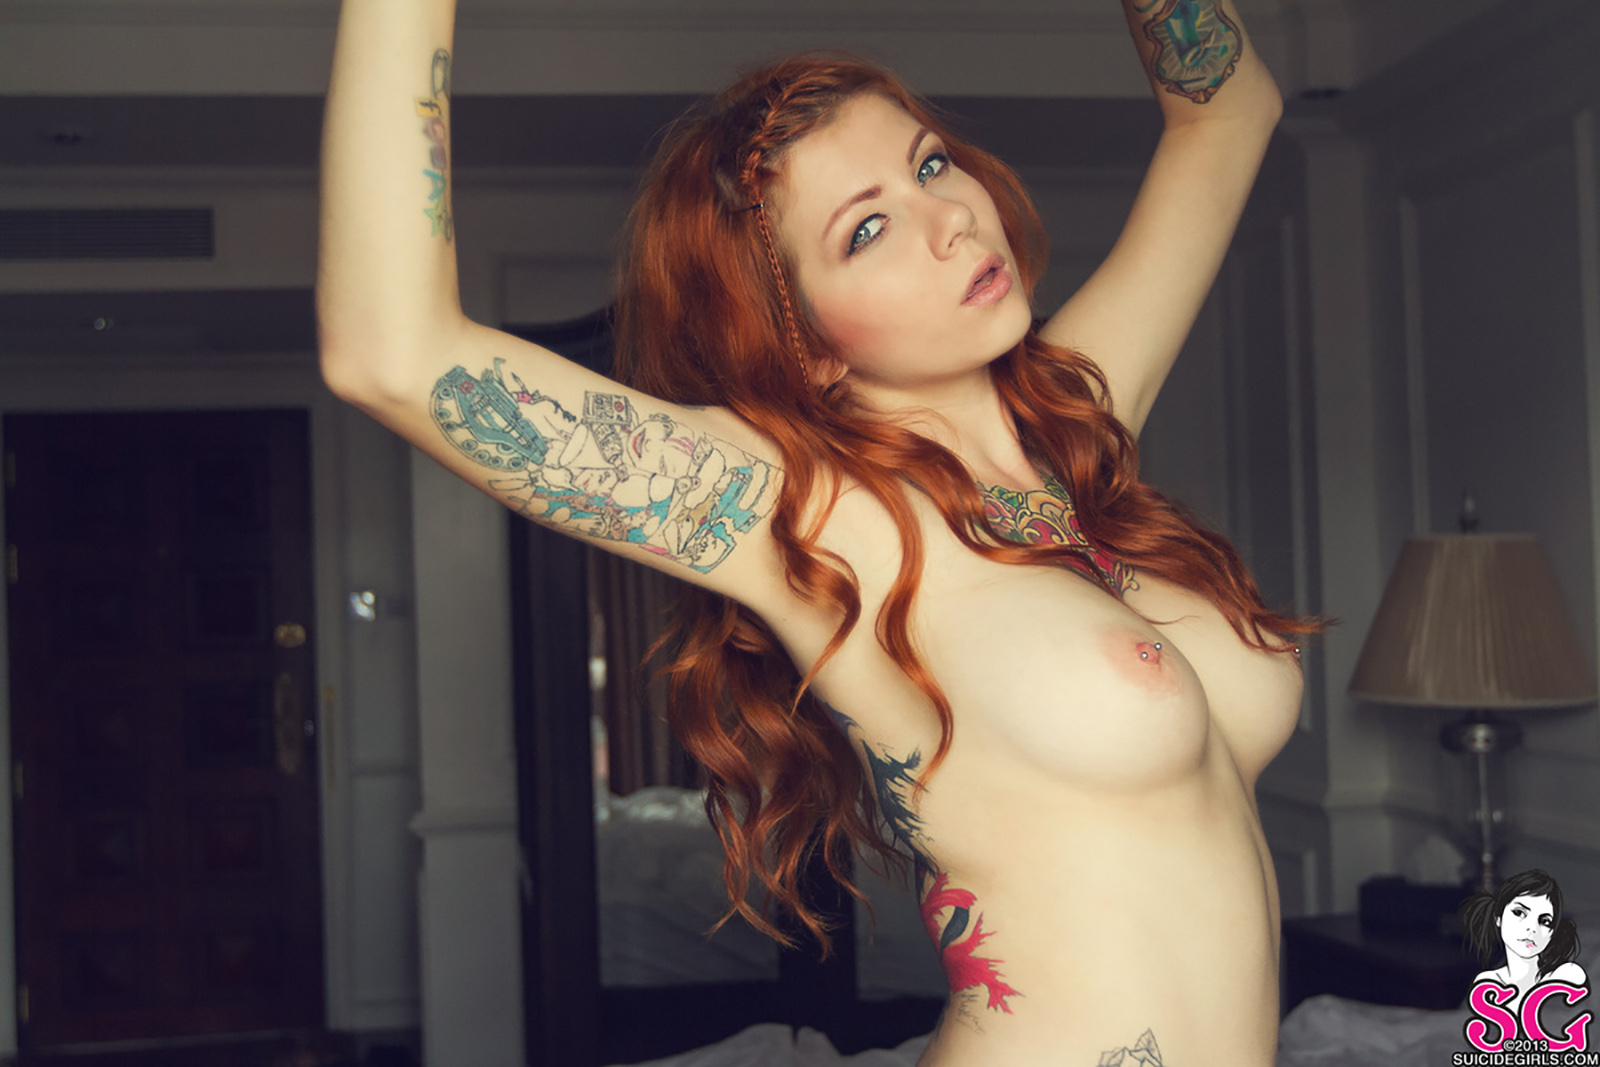 Congratulate, seems Nude women tatoo redhead commit error